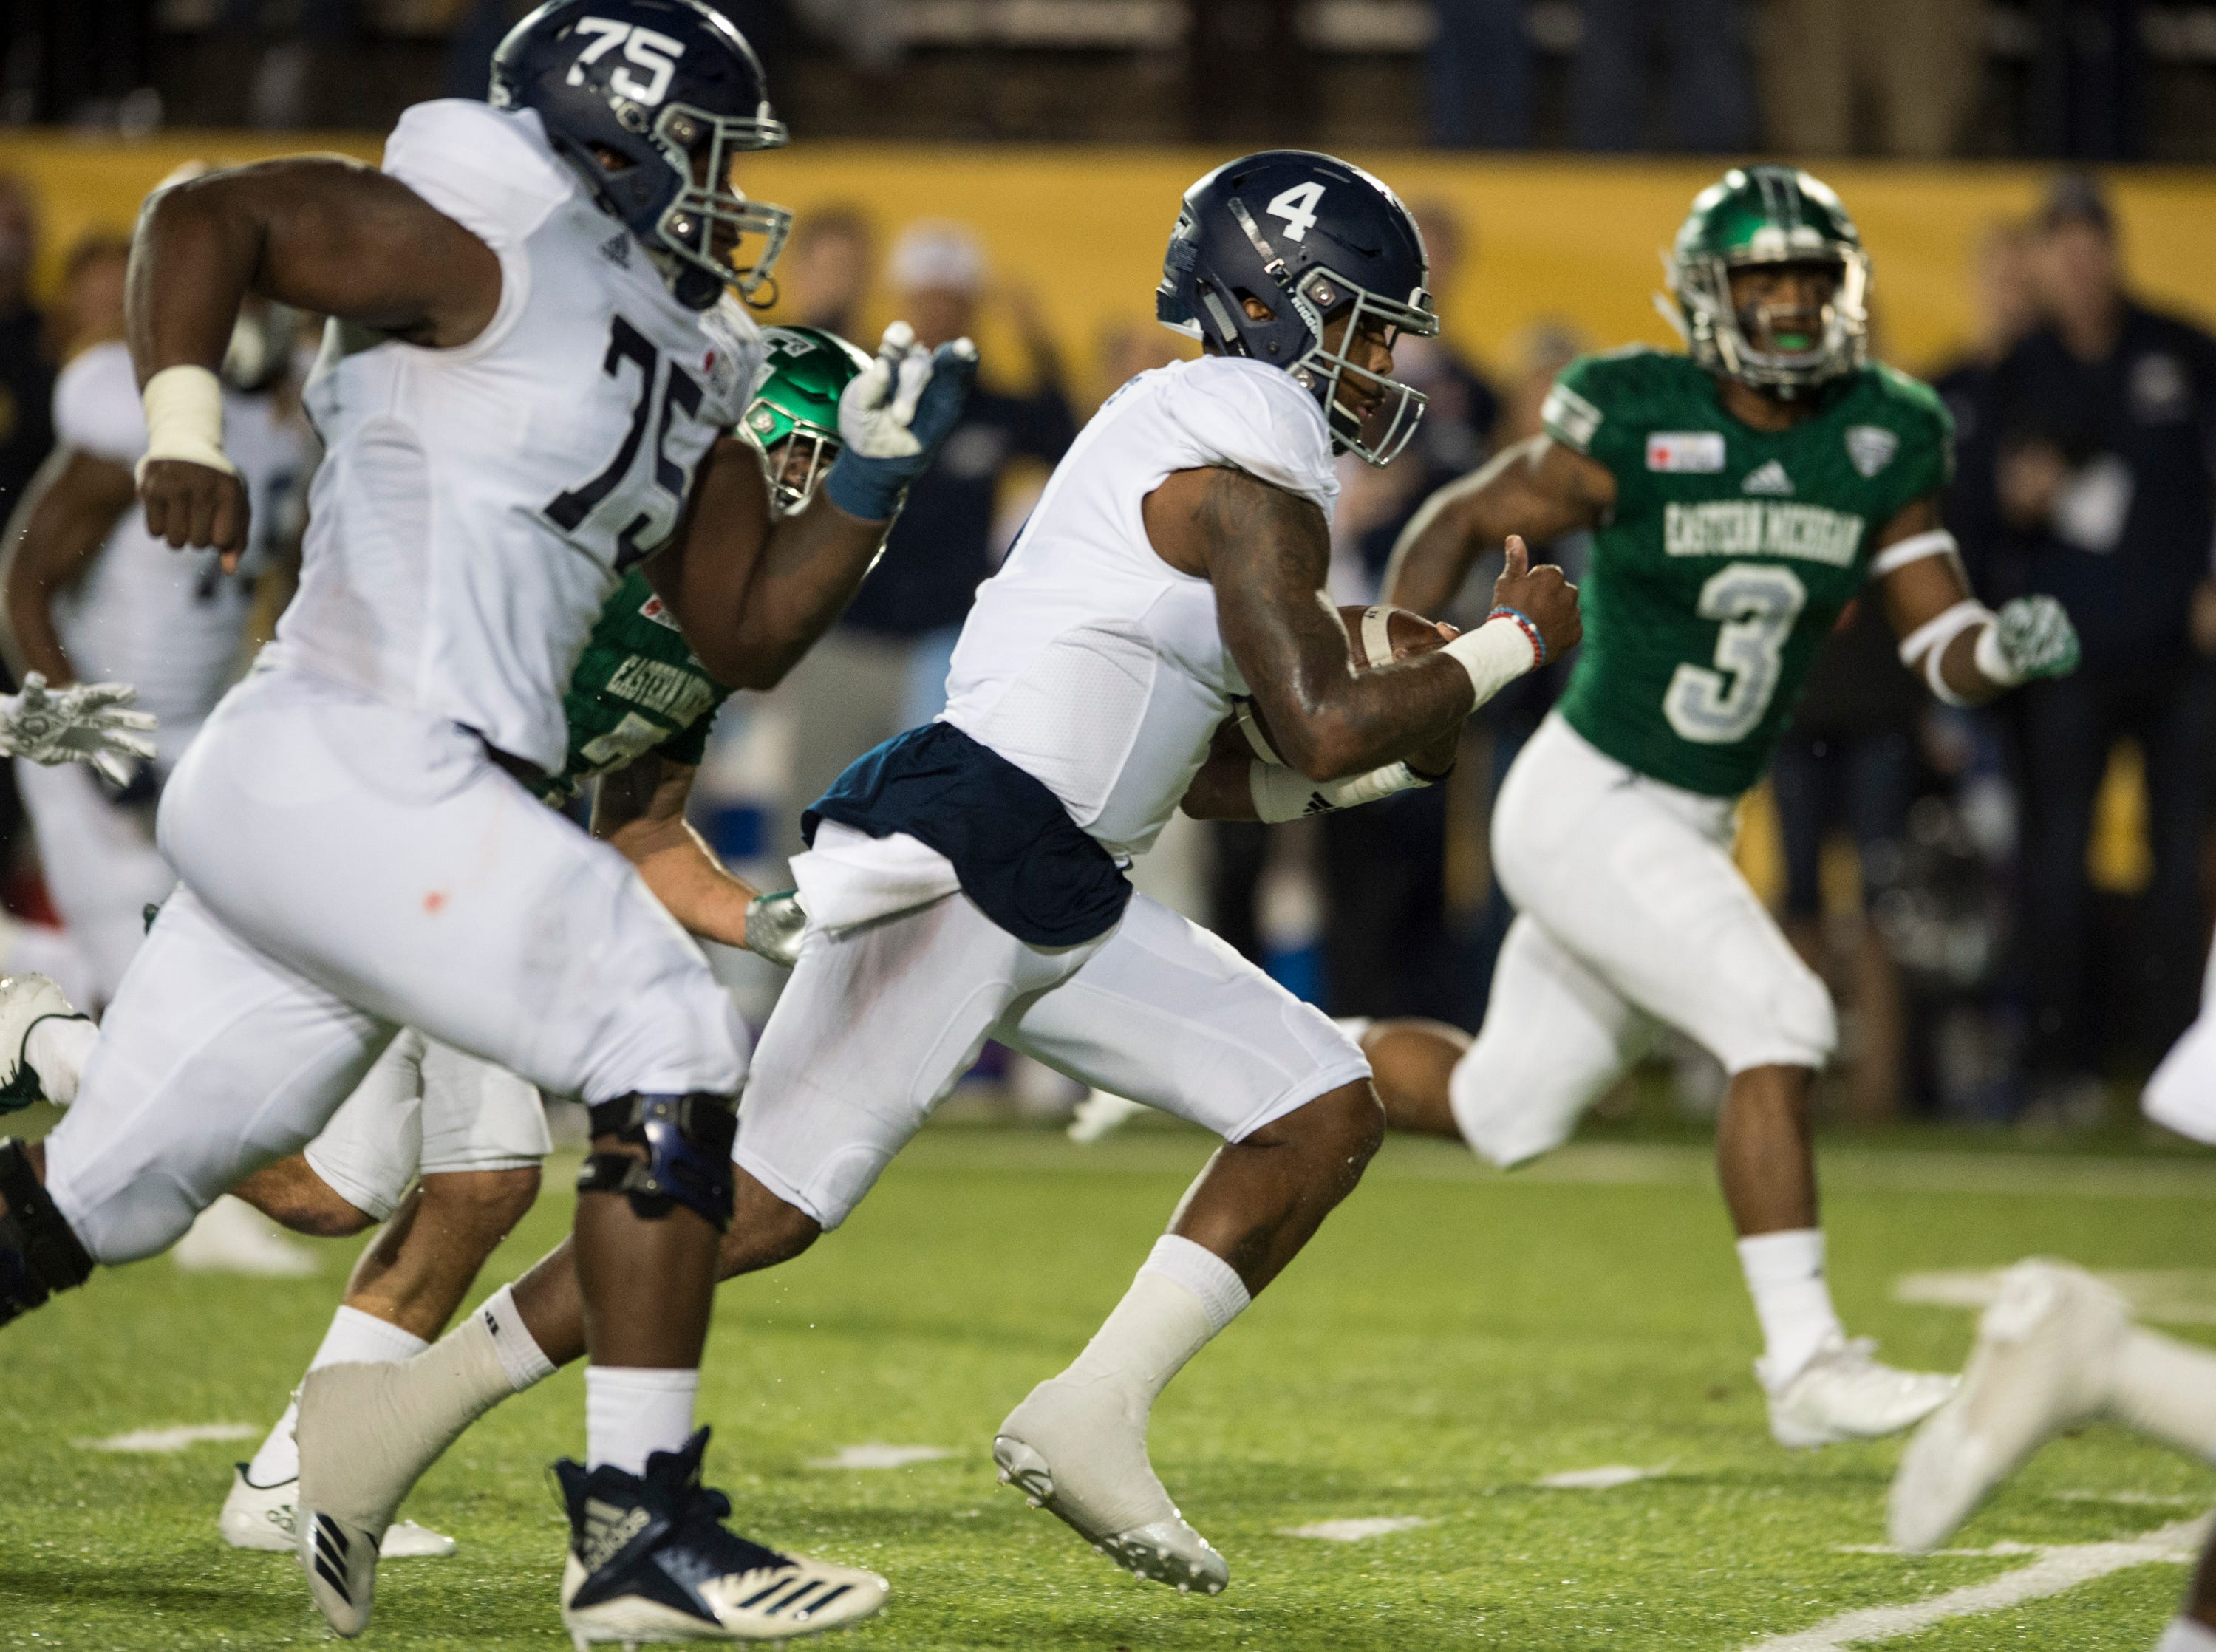 Georgia Southern quarterback Shai Werts (4) runs into the end zone for a touchdown during the Camellia Bowl at Cramton Bowl in Montgomery, Ala., on Saturday, Dec. 15, 2018. Georgia Southern leads Eastern Michigan 17-7 at halftime.